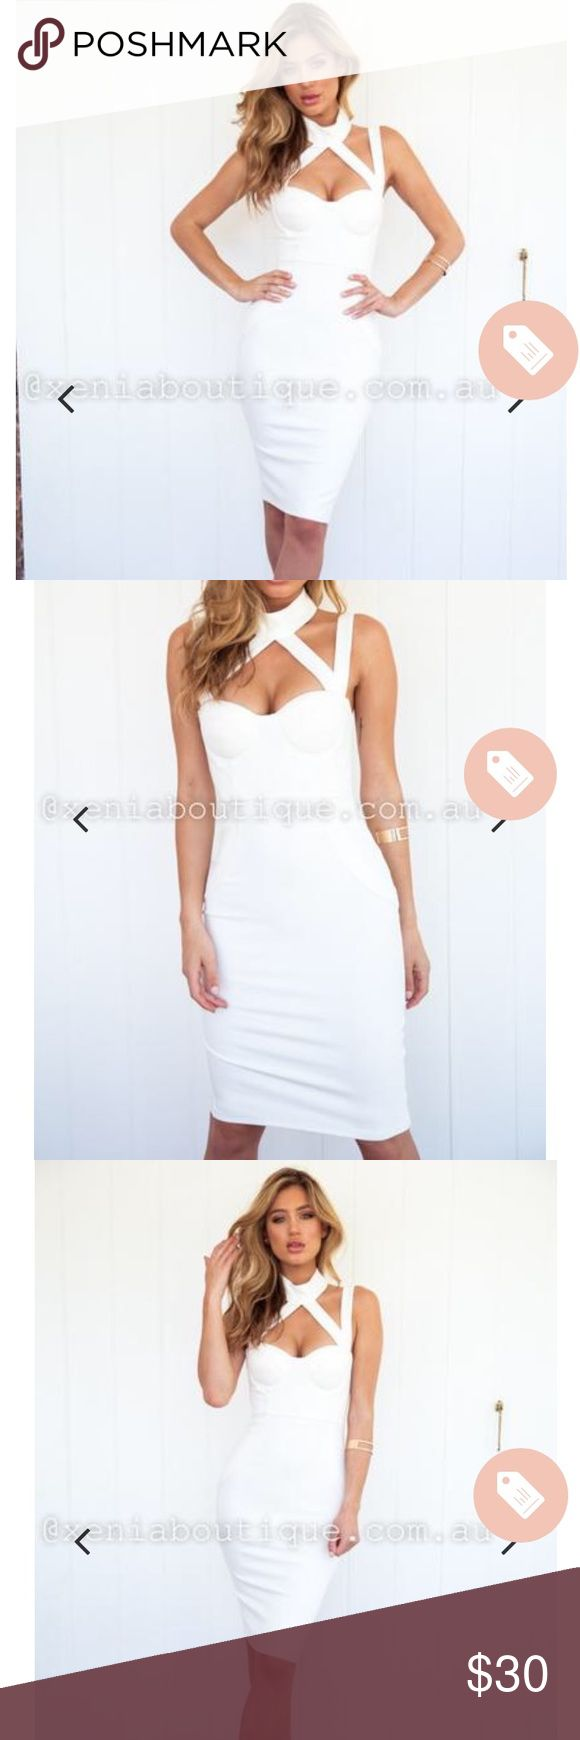 White Xenia bodycon dress Stunning and elegant dress. Very flattering, gives you nice hourglass shape. Only selling because it didn't get here in time! From Australian website, size 8 AUS so size 4 US. BRAND NEW!!! PHOTO CREDIT: Xenia Boutique Xenia Boutique Dresses Midi